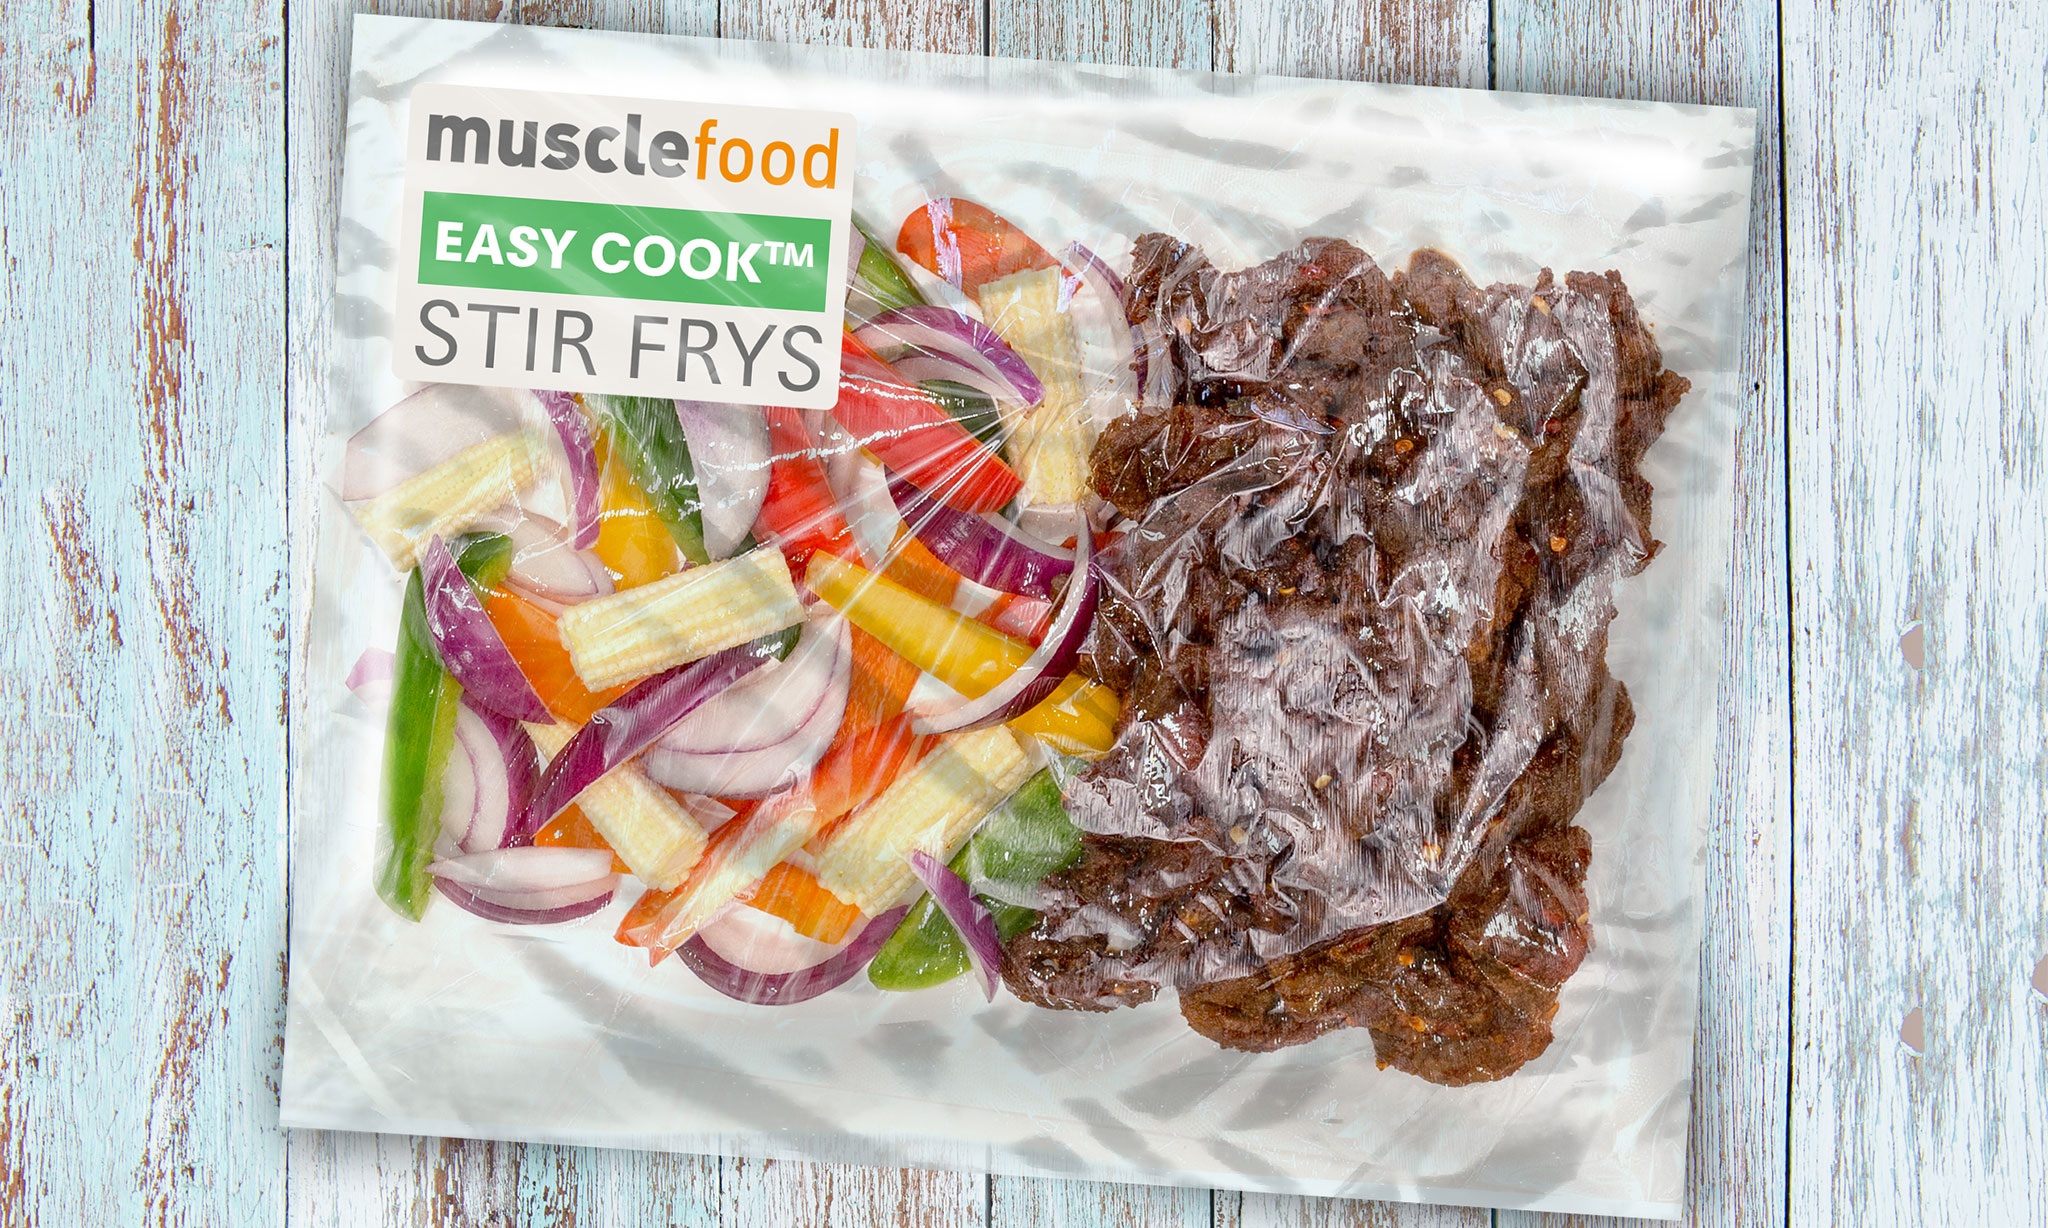 Muscle Food Clean Eating Meals for Two Weeks From £34